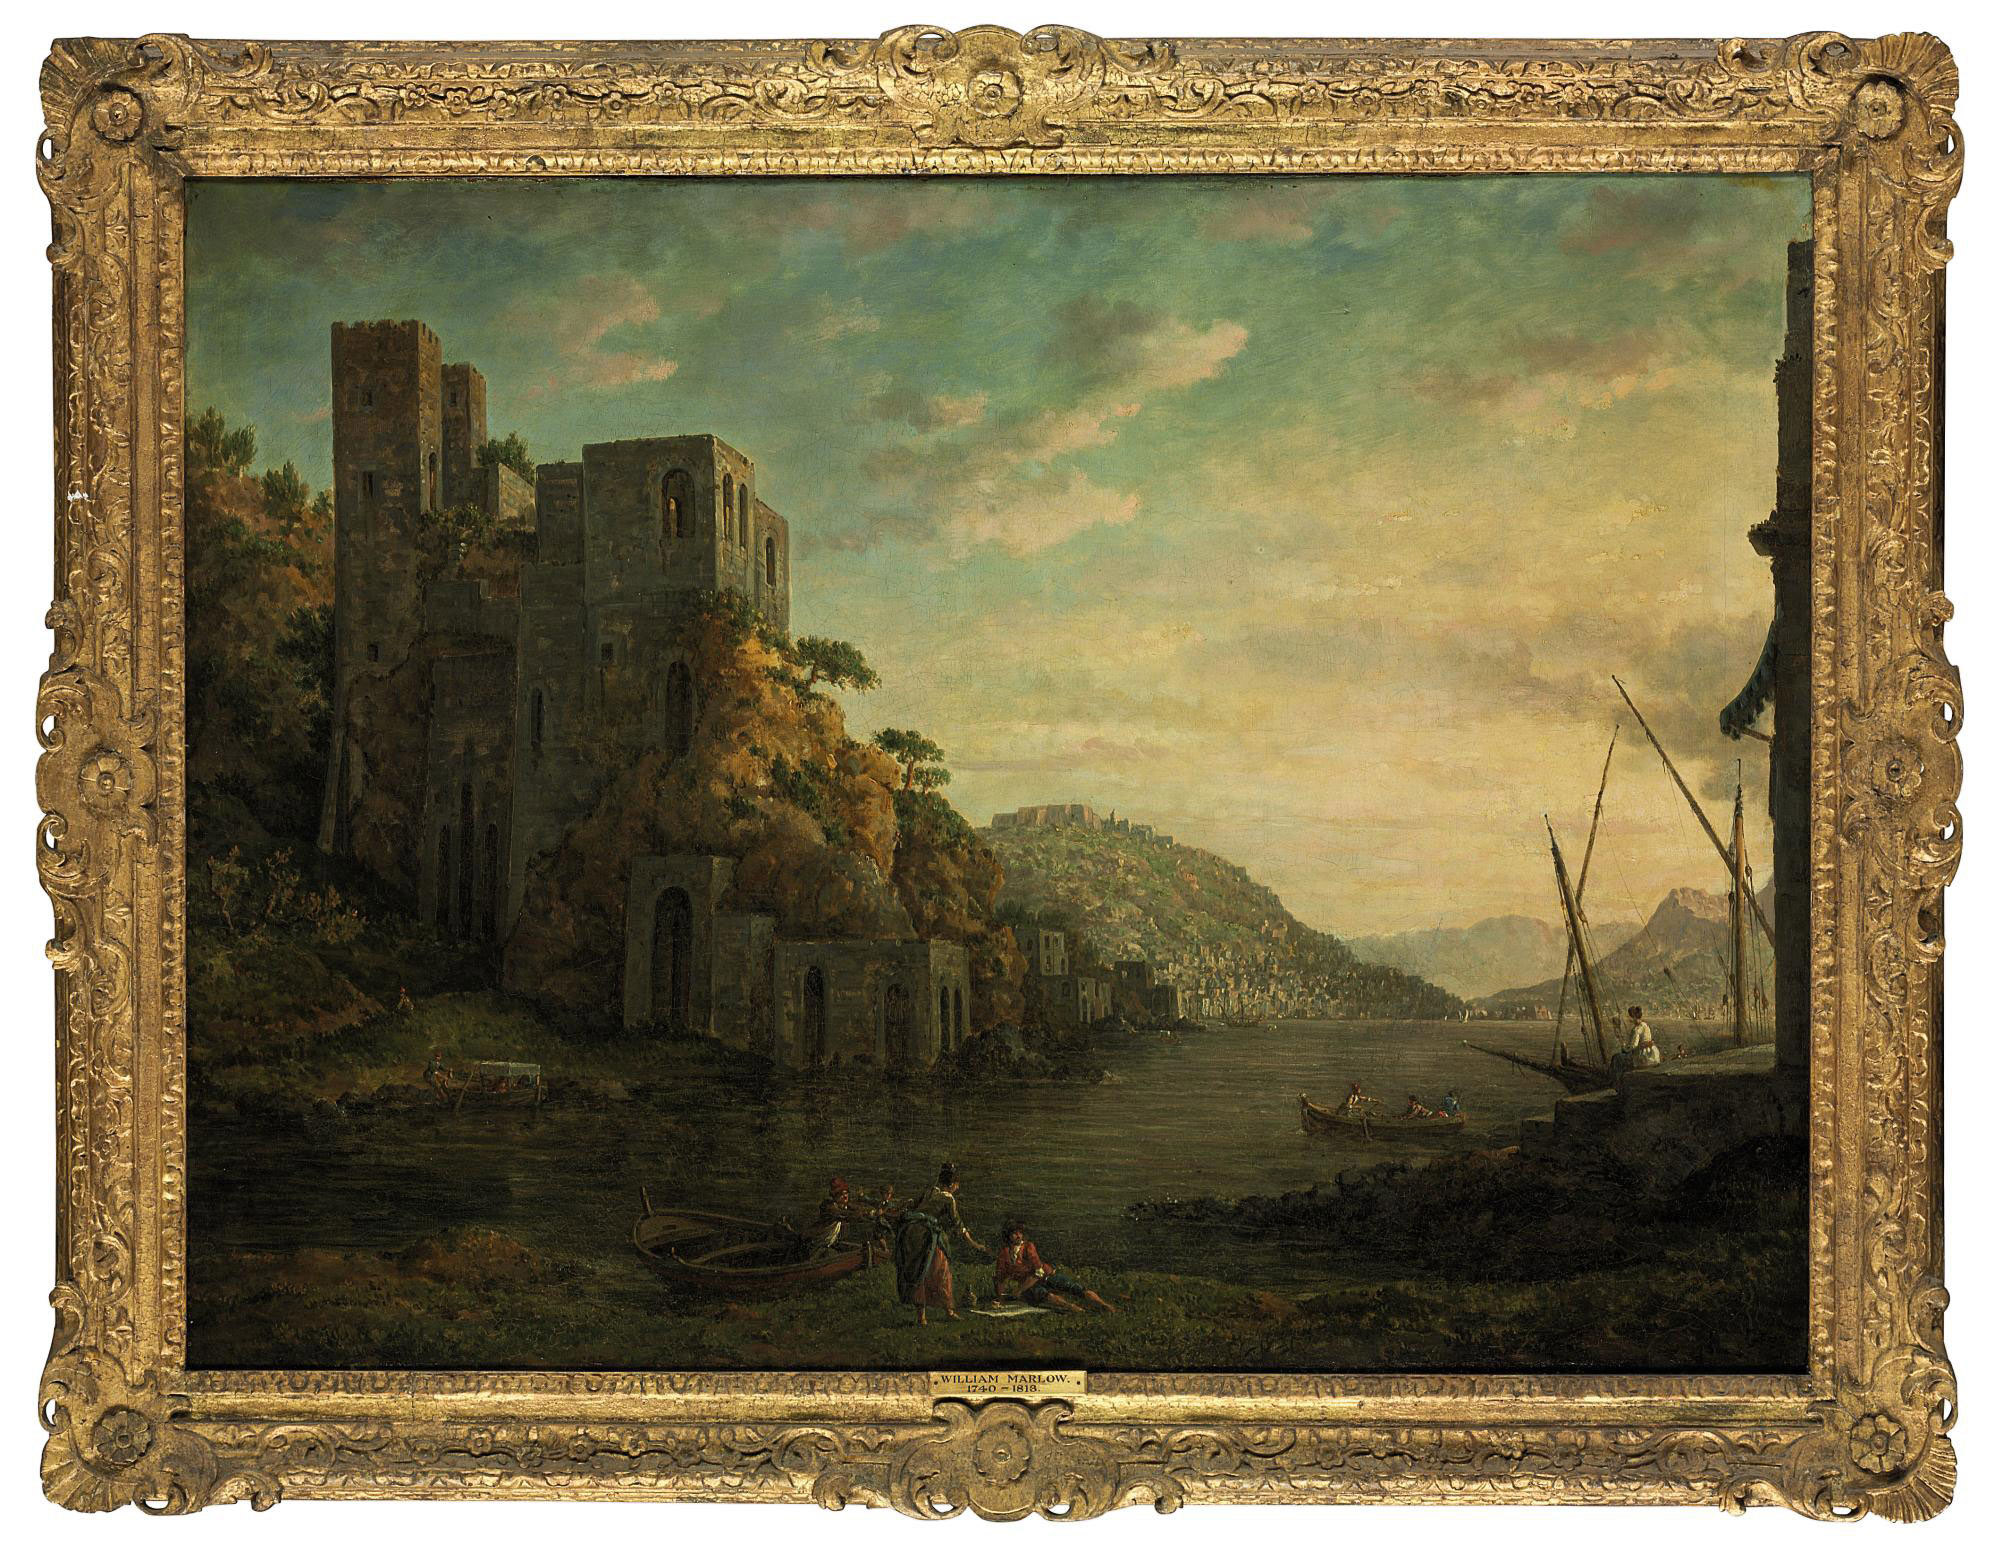 View of the coast near Naples, with figures in rowing boats in the foreground